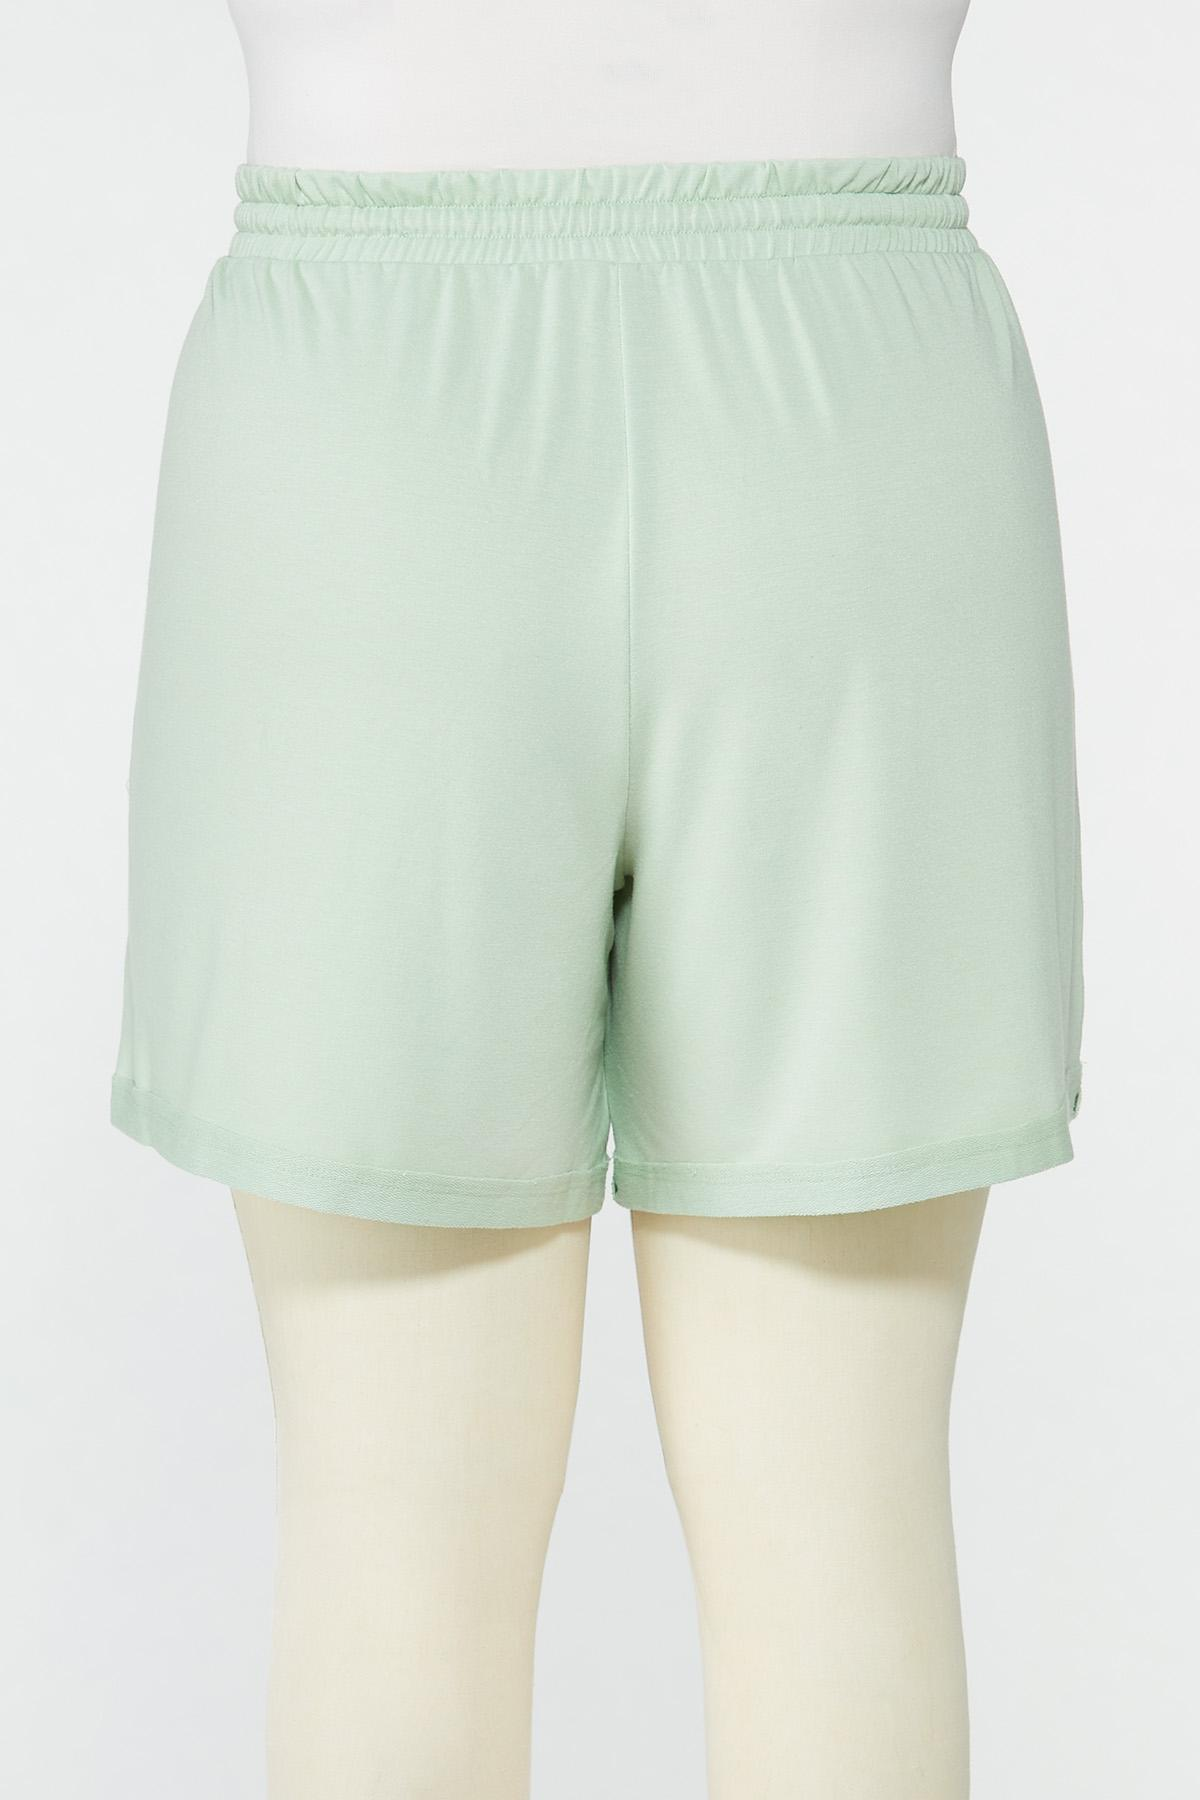 Plus Size French Terry Shorts (Item #44633424)